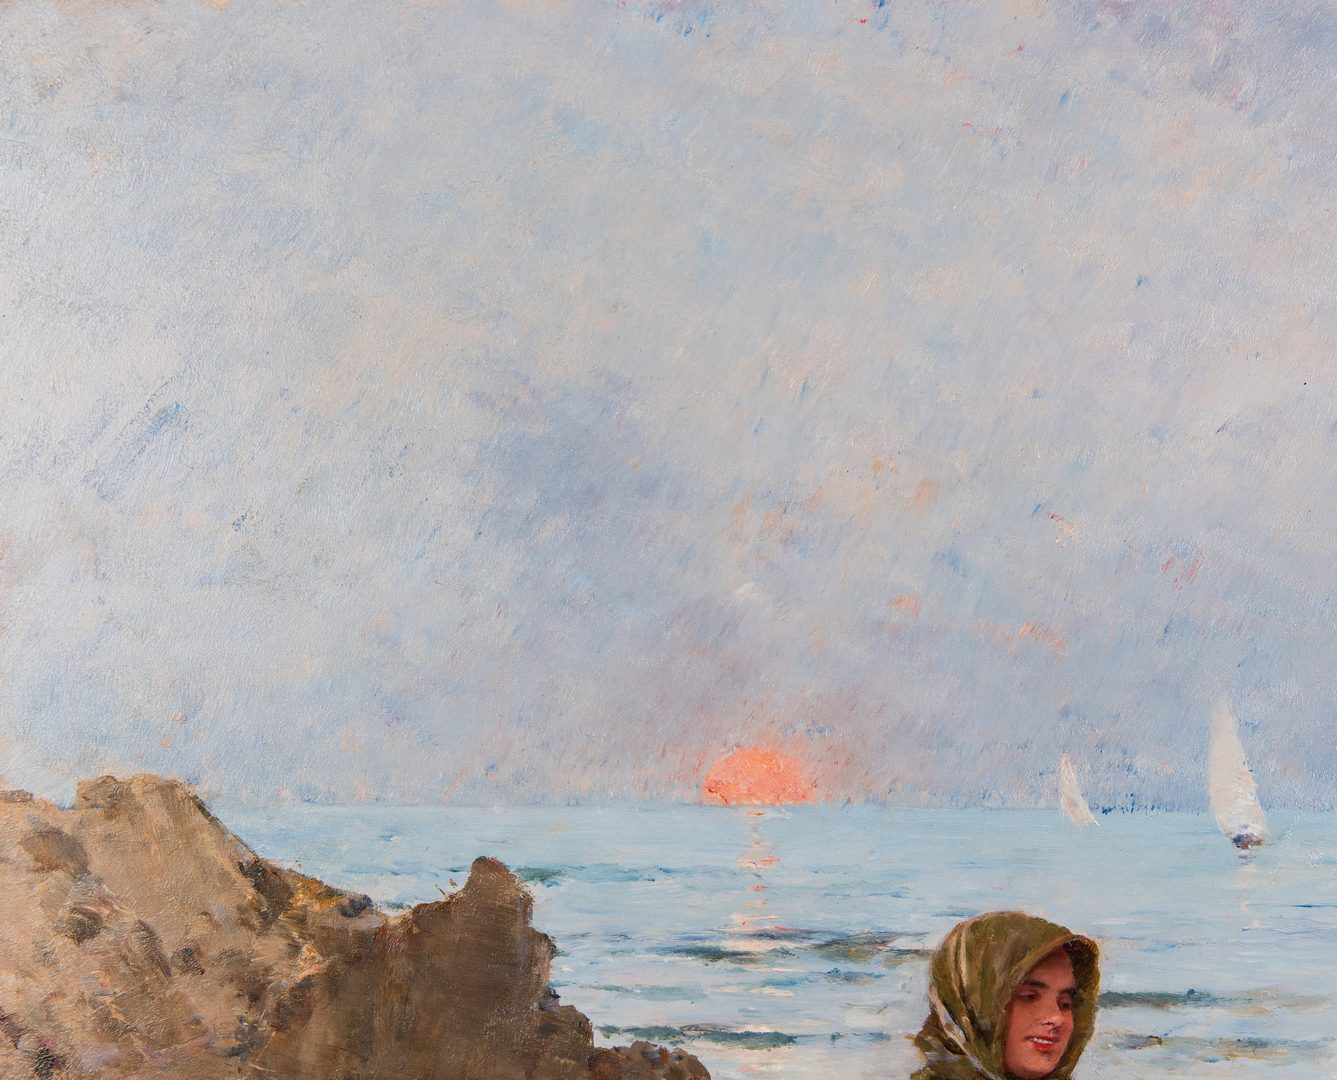 Lot 103: Francisco Miralles y Galup Oil, Beach Scene at Dusk